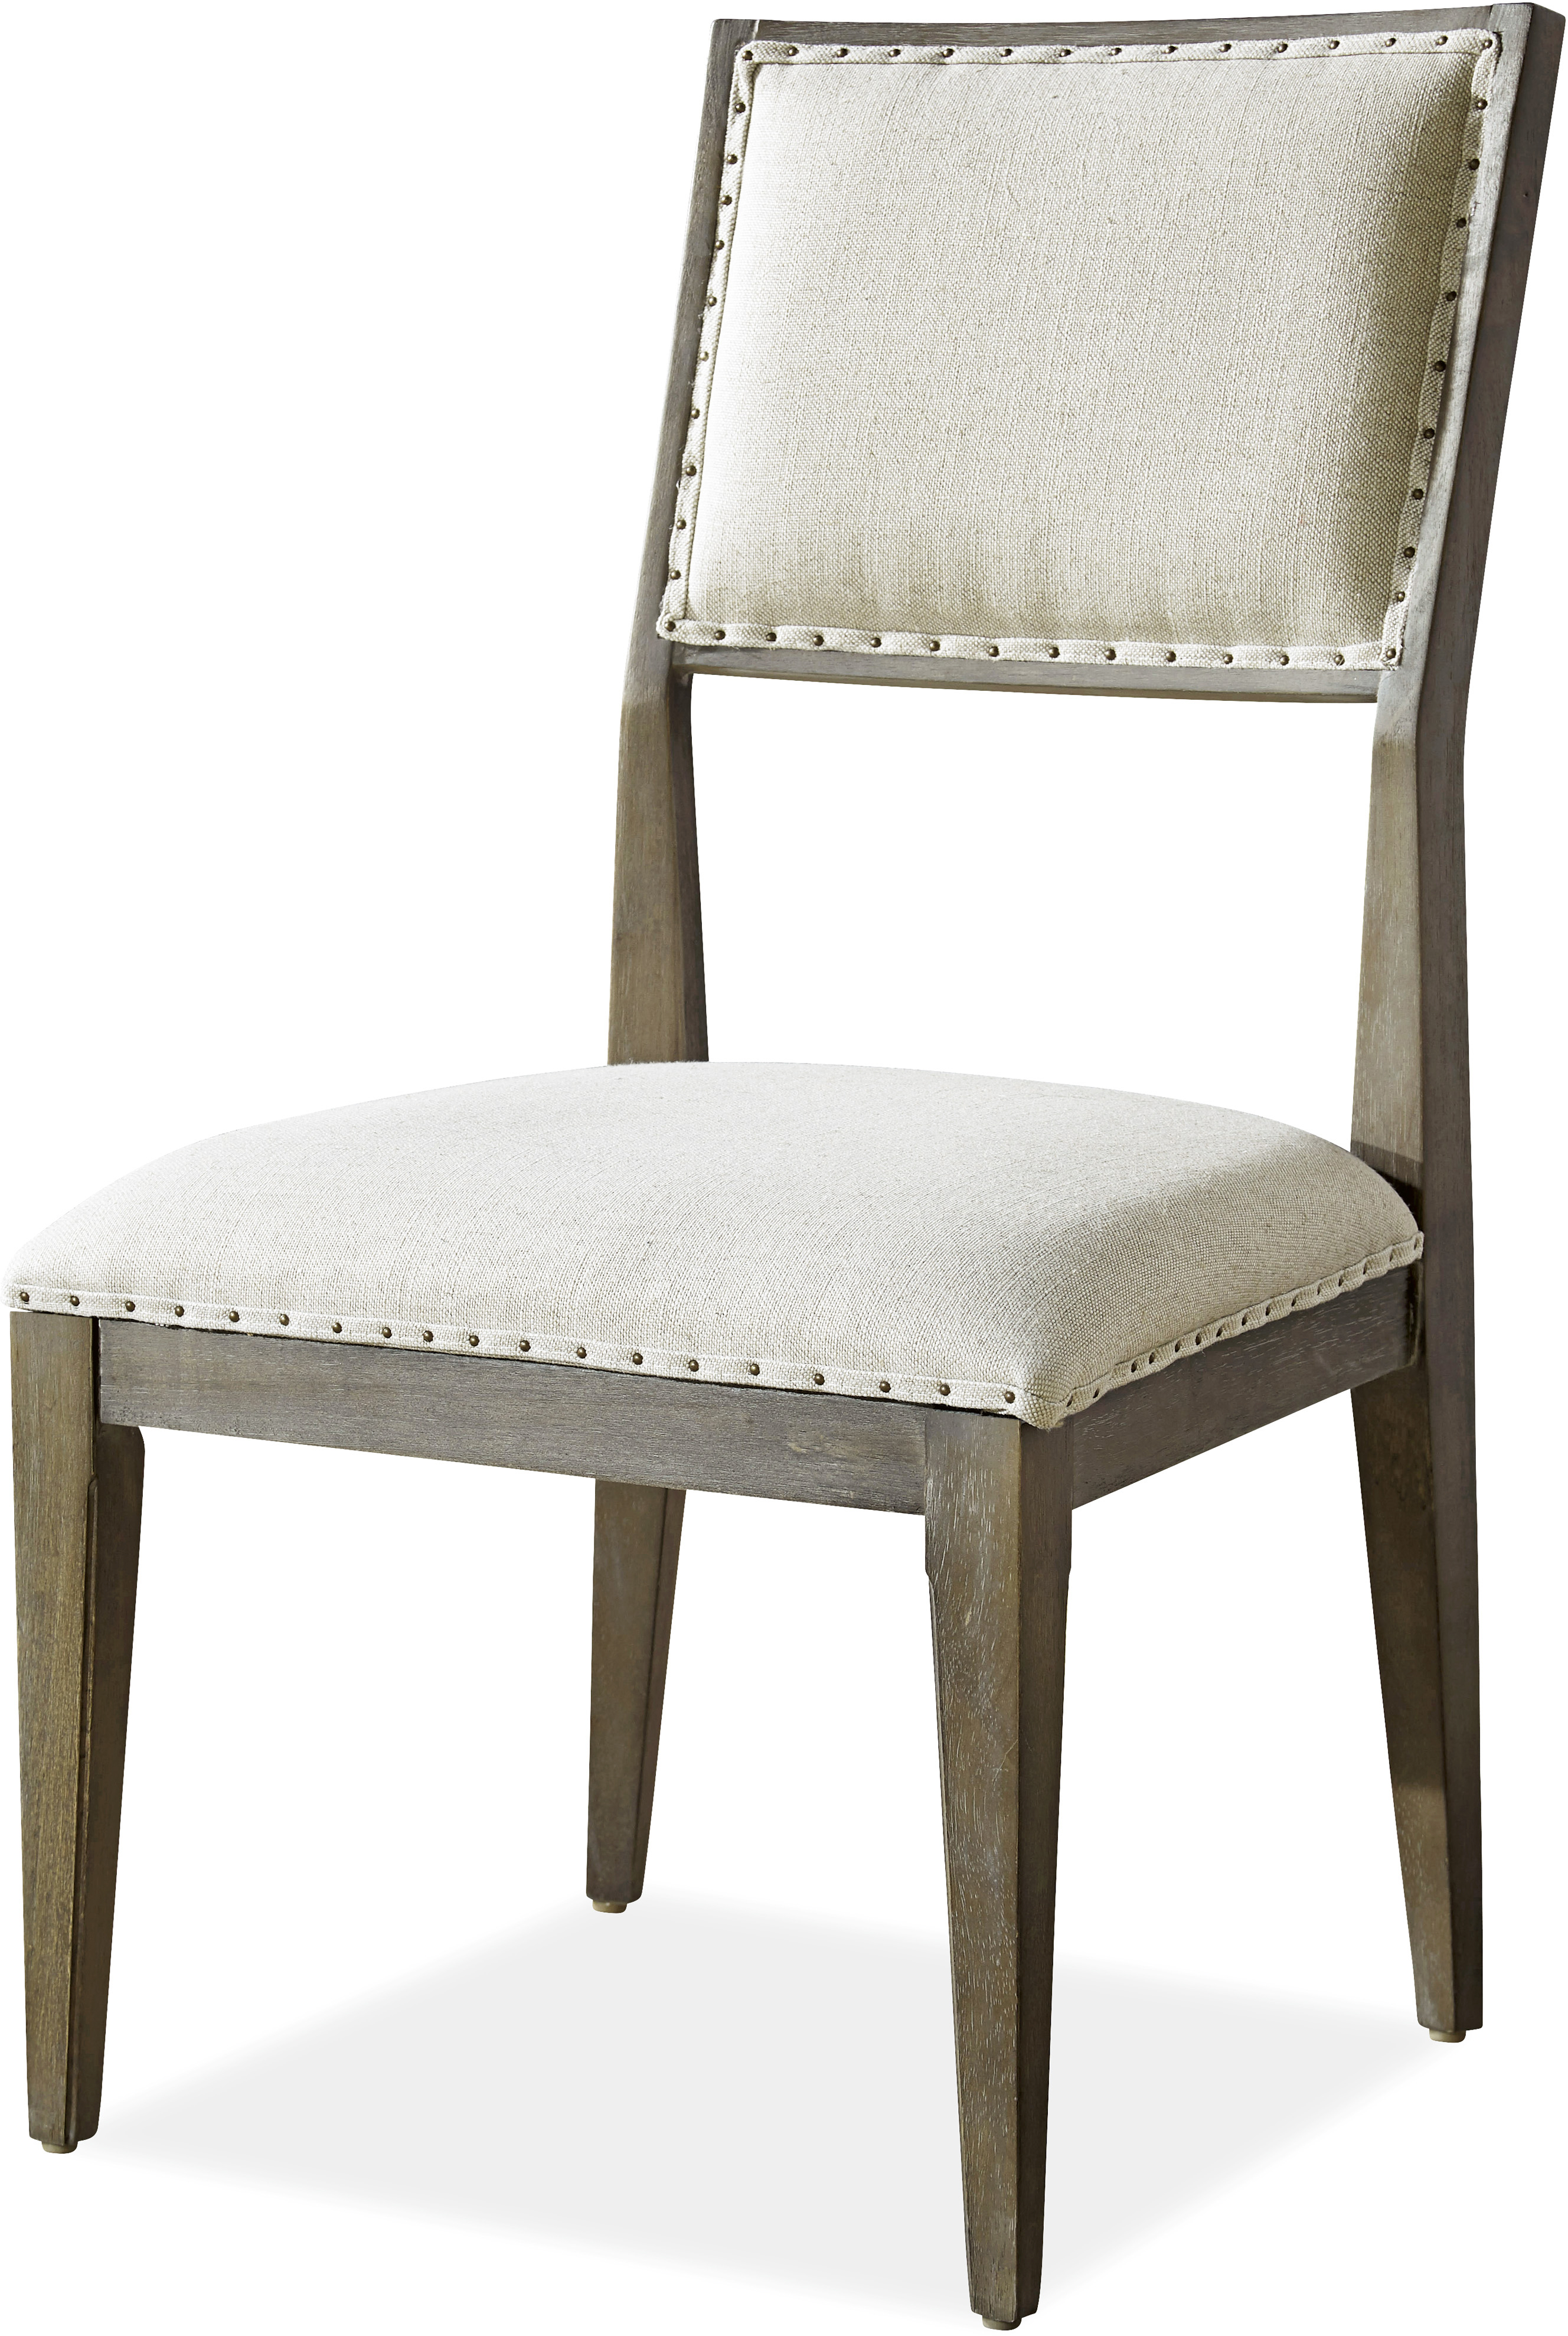 Morris Home Furnishings Platinum Platinum Dining Side Chair - Item Number: 507634-RTA